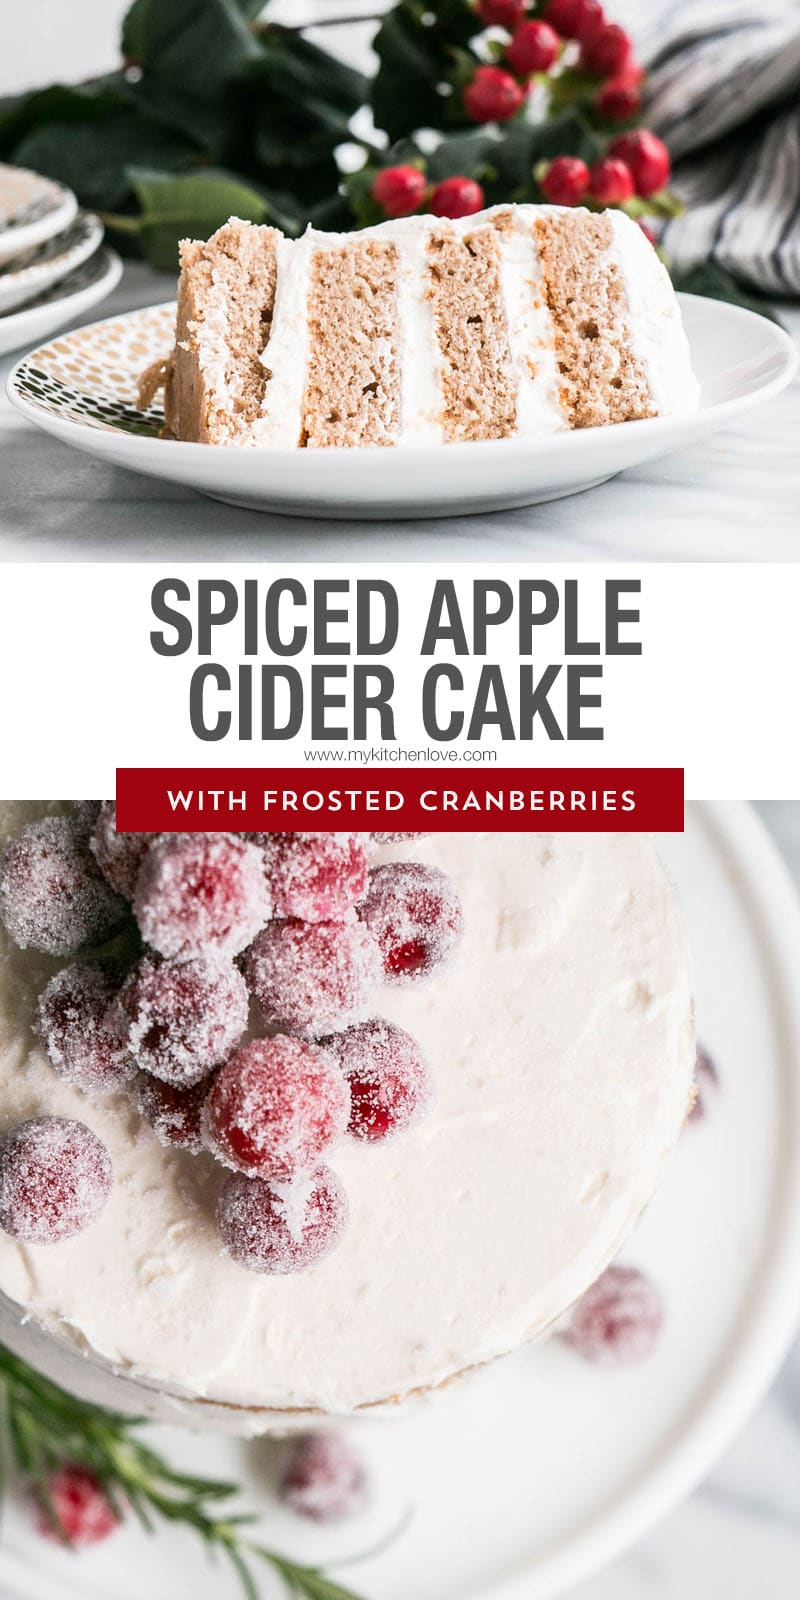 Spiced Apple Cider Cake with Frosted Cranberries is perfect as a stunning centre pieces for any holiday event or a delicious Fall cake. via @mykitchenlove